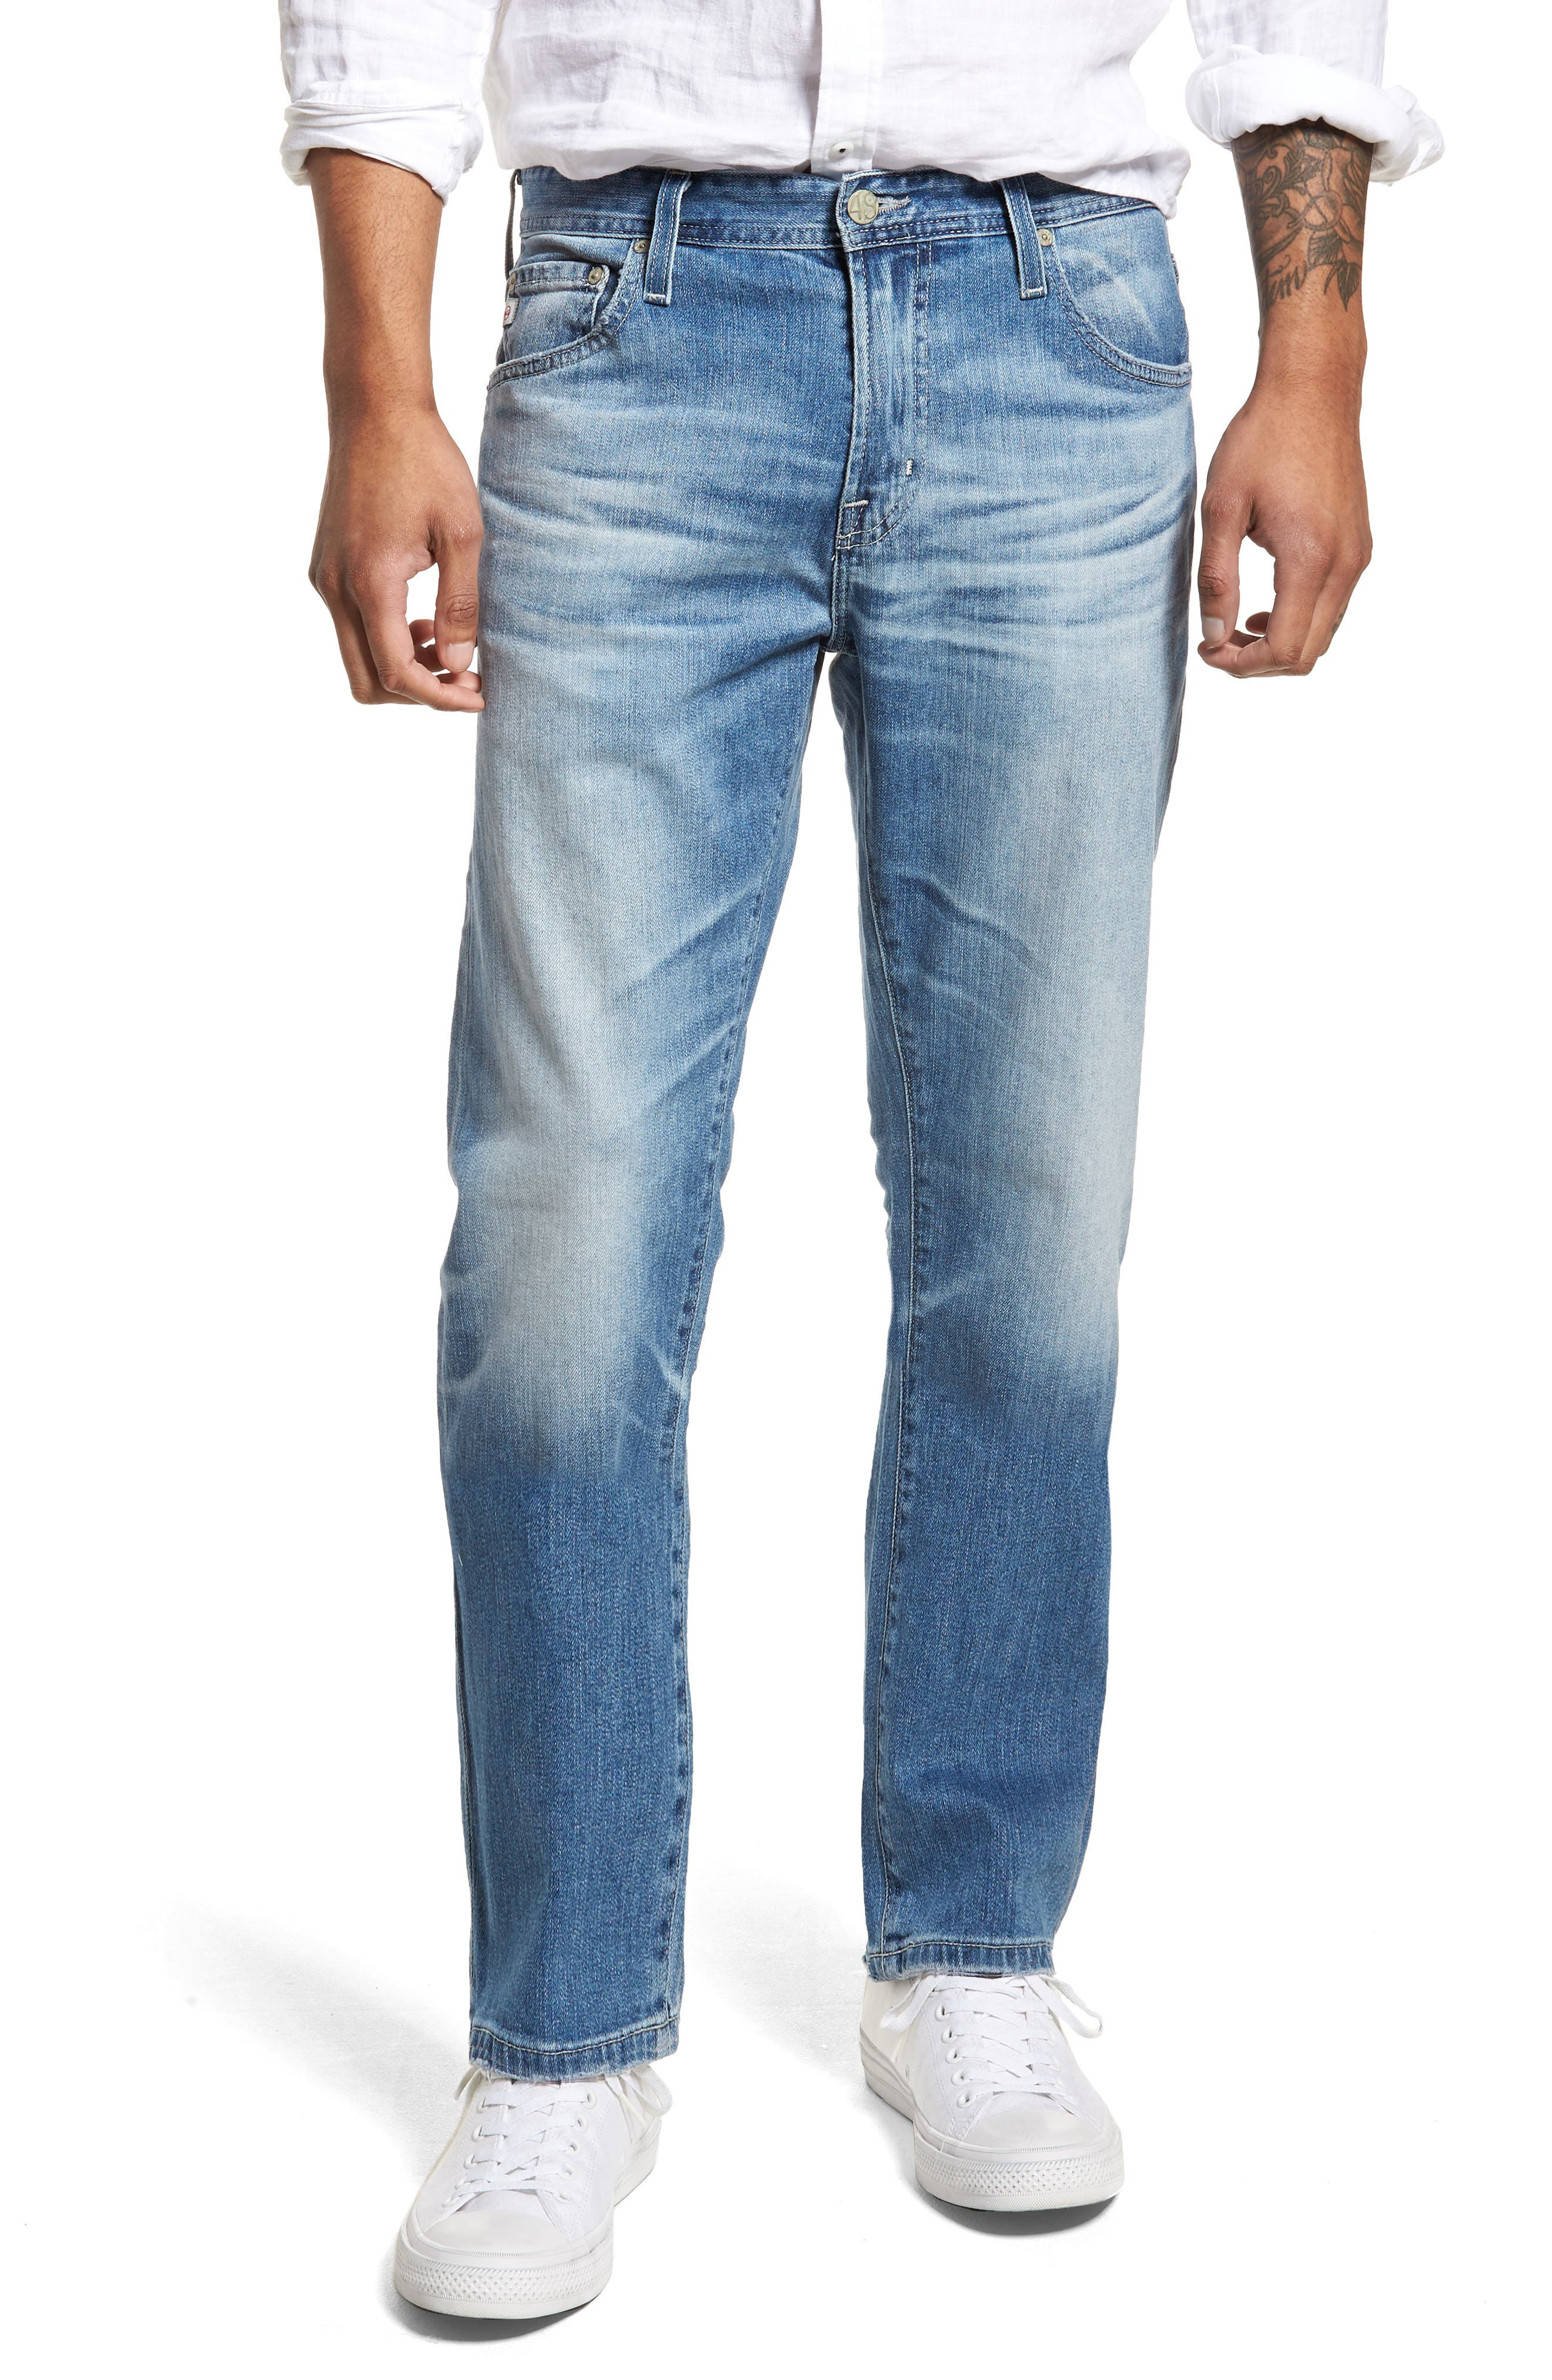 Ives Straight Leg Jeans,                             Main thumbnail 1, color,                             15 Years Aground